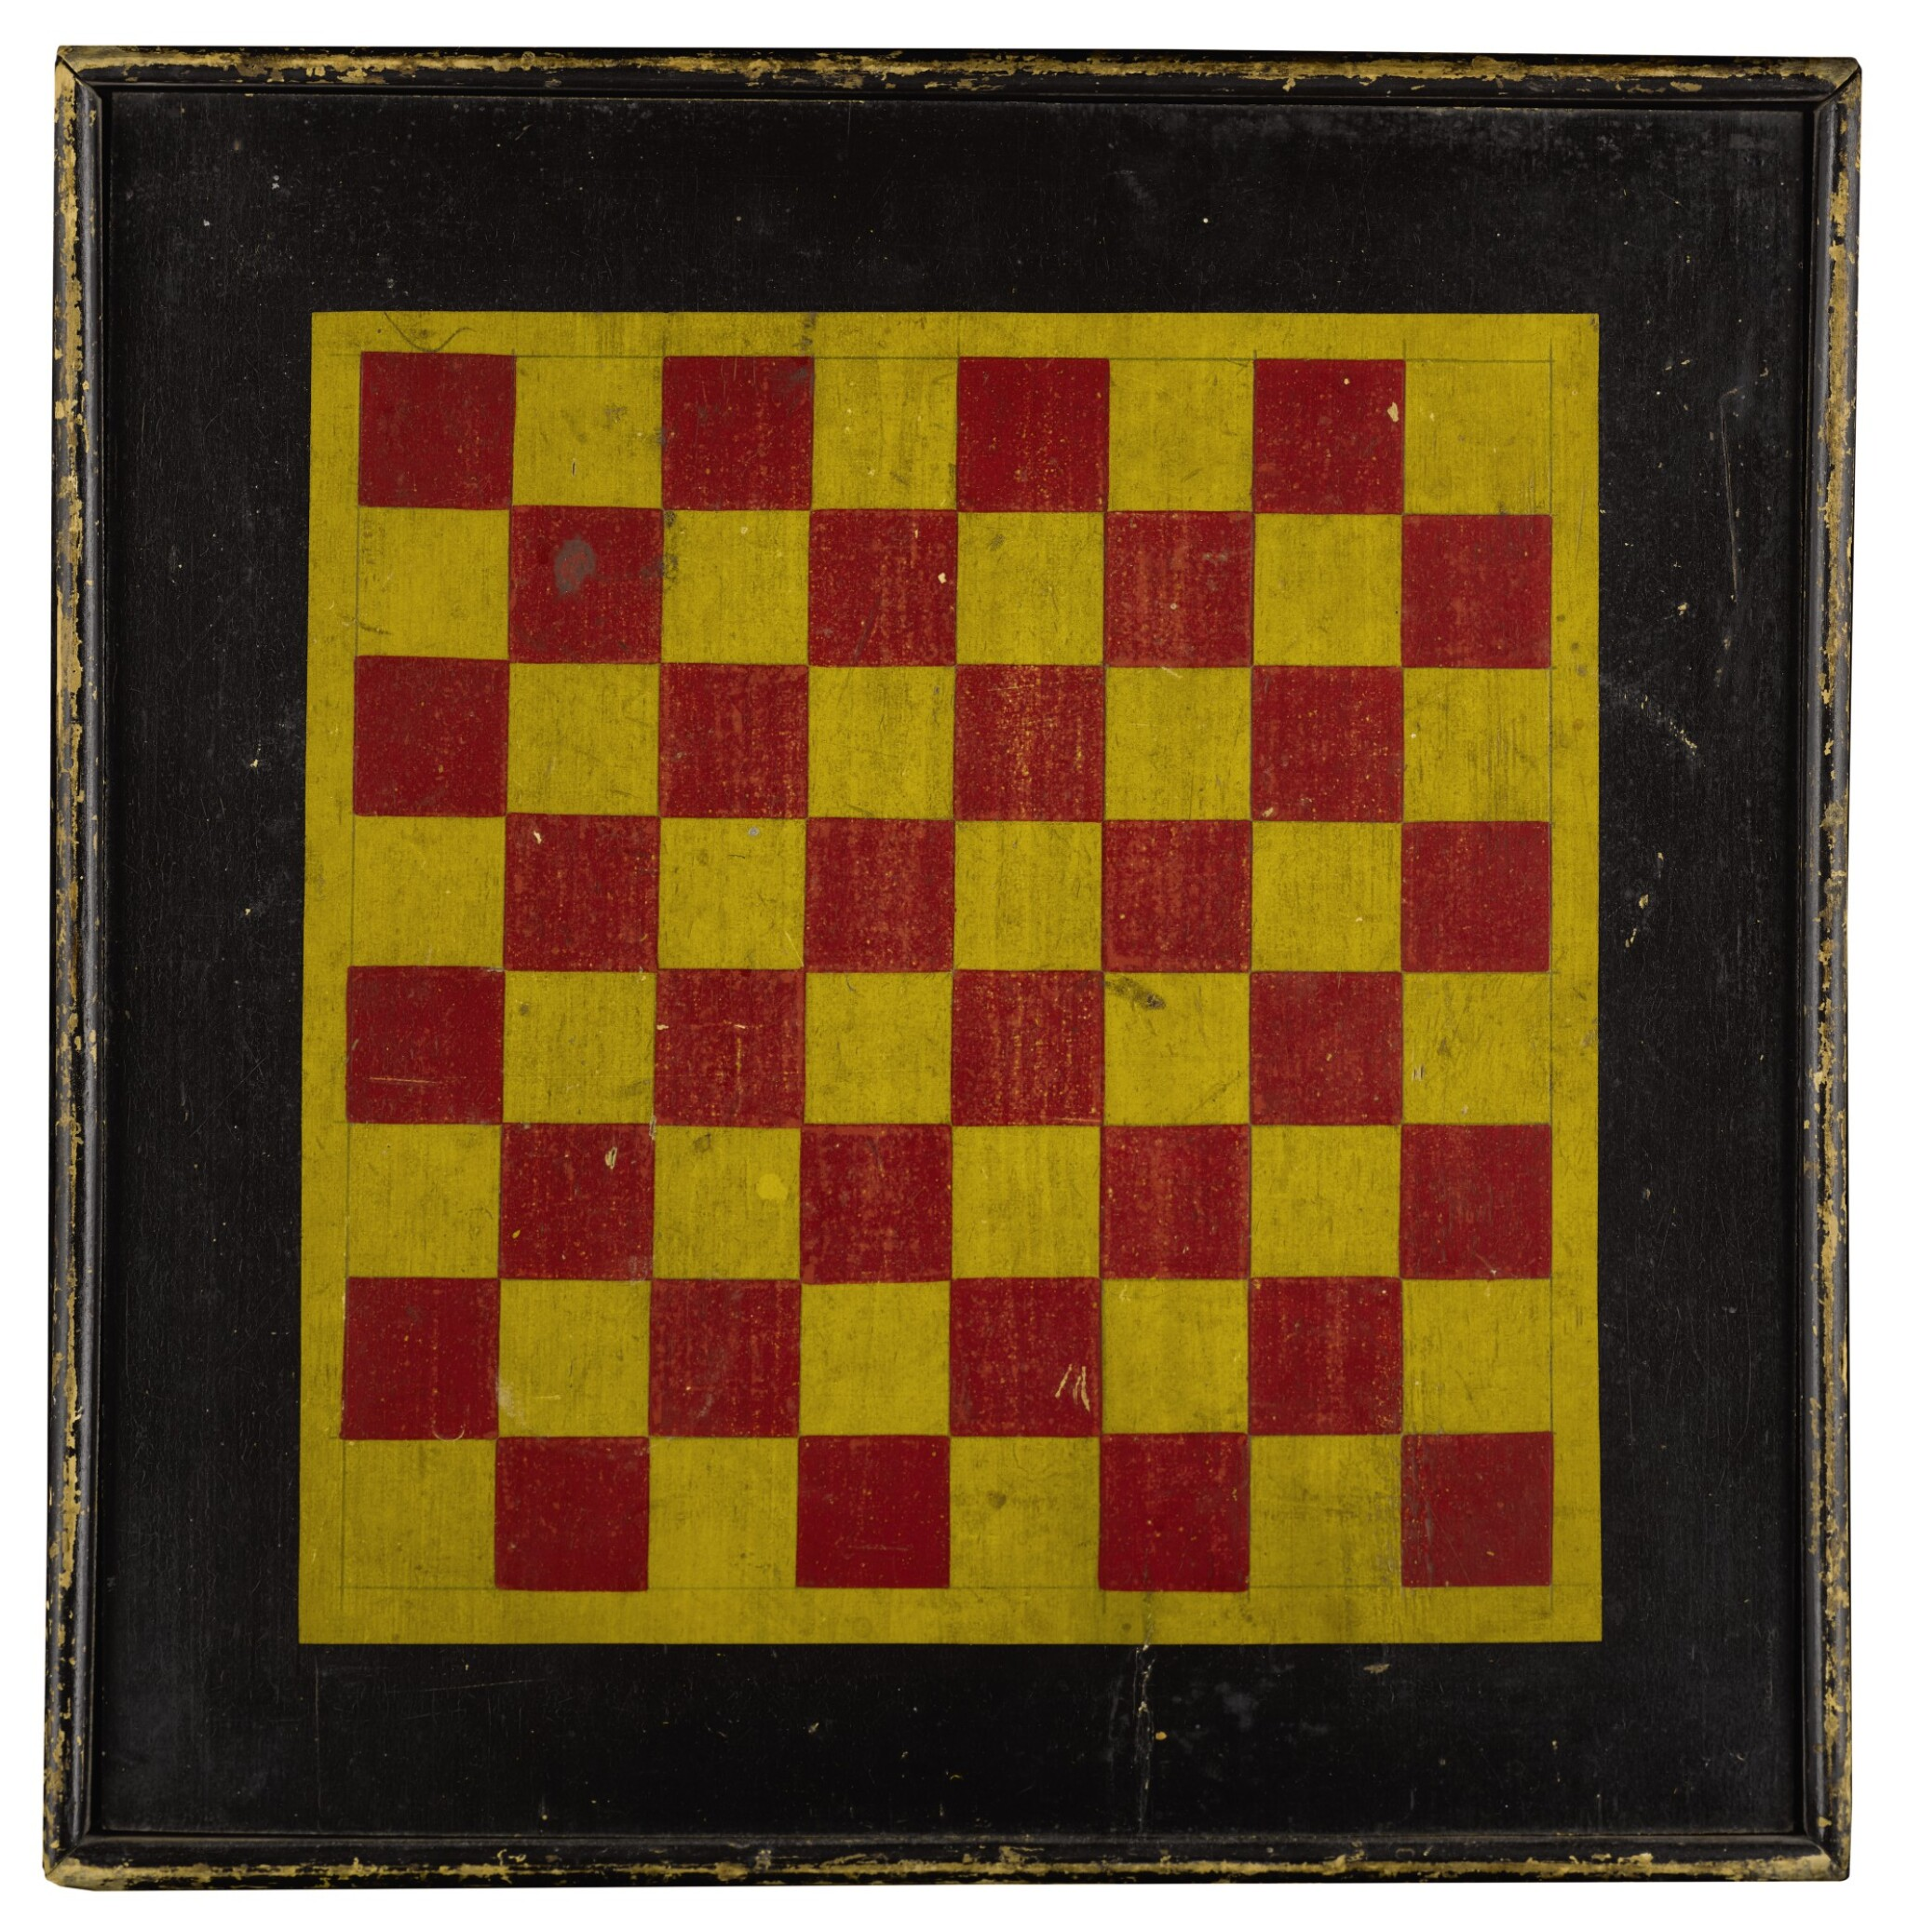 View full screen - View 1 of Lot 1451. UNUSUAL RED AND YELLOW PAINTED PINE CHECKER GAMEBOARD, LATE 19TH CENTURY.